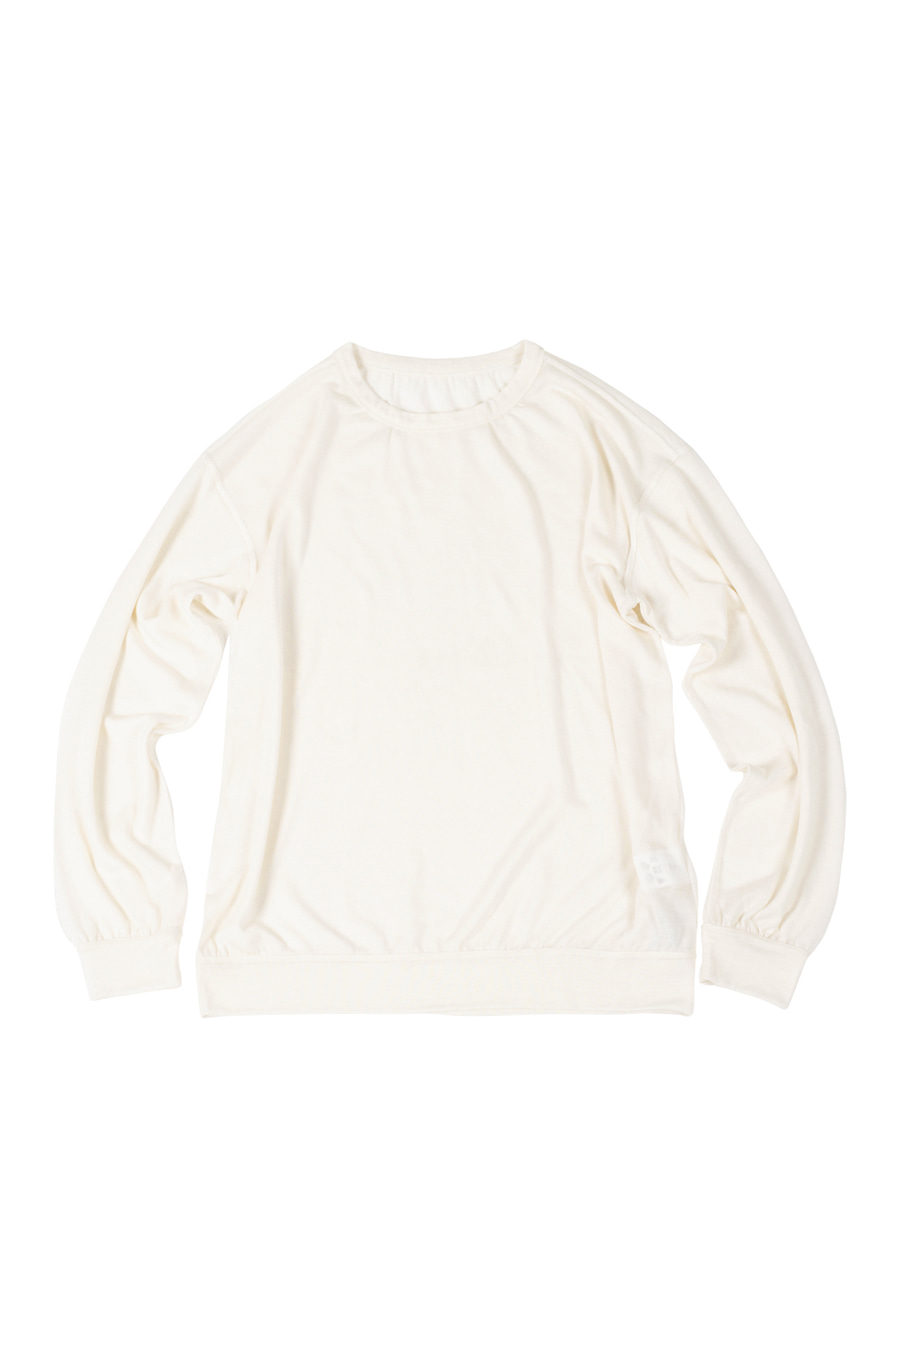 아티튜드(ARTTITUDE)Drape Knit Tee / Off White